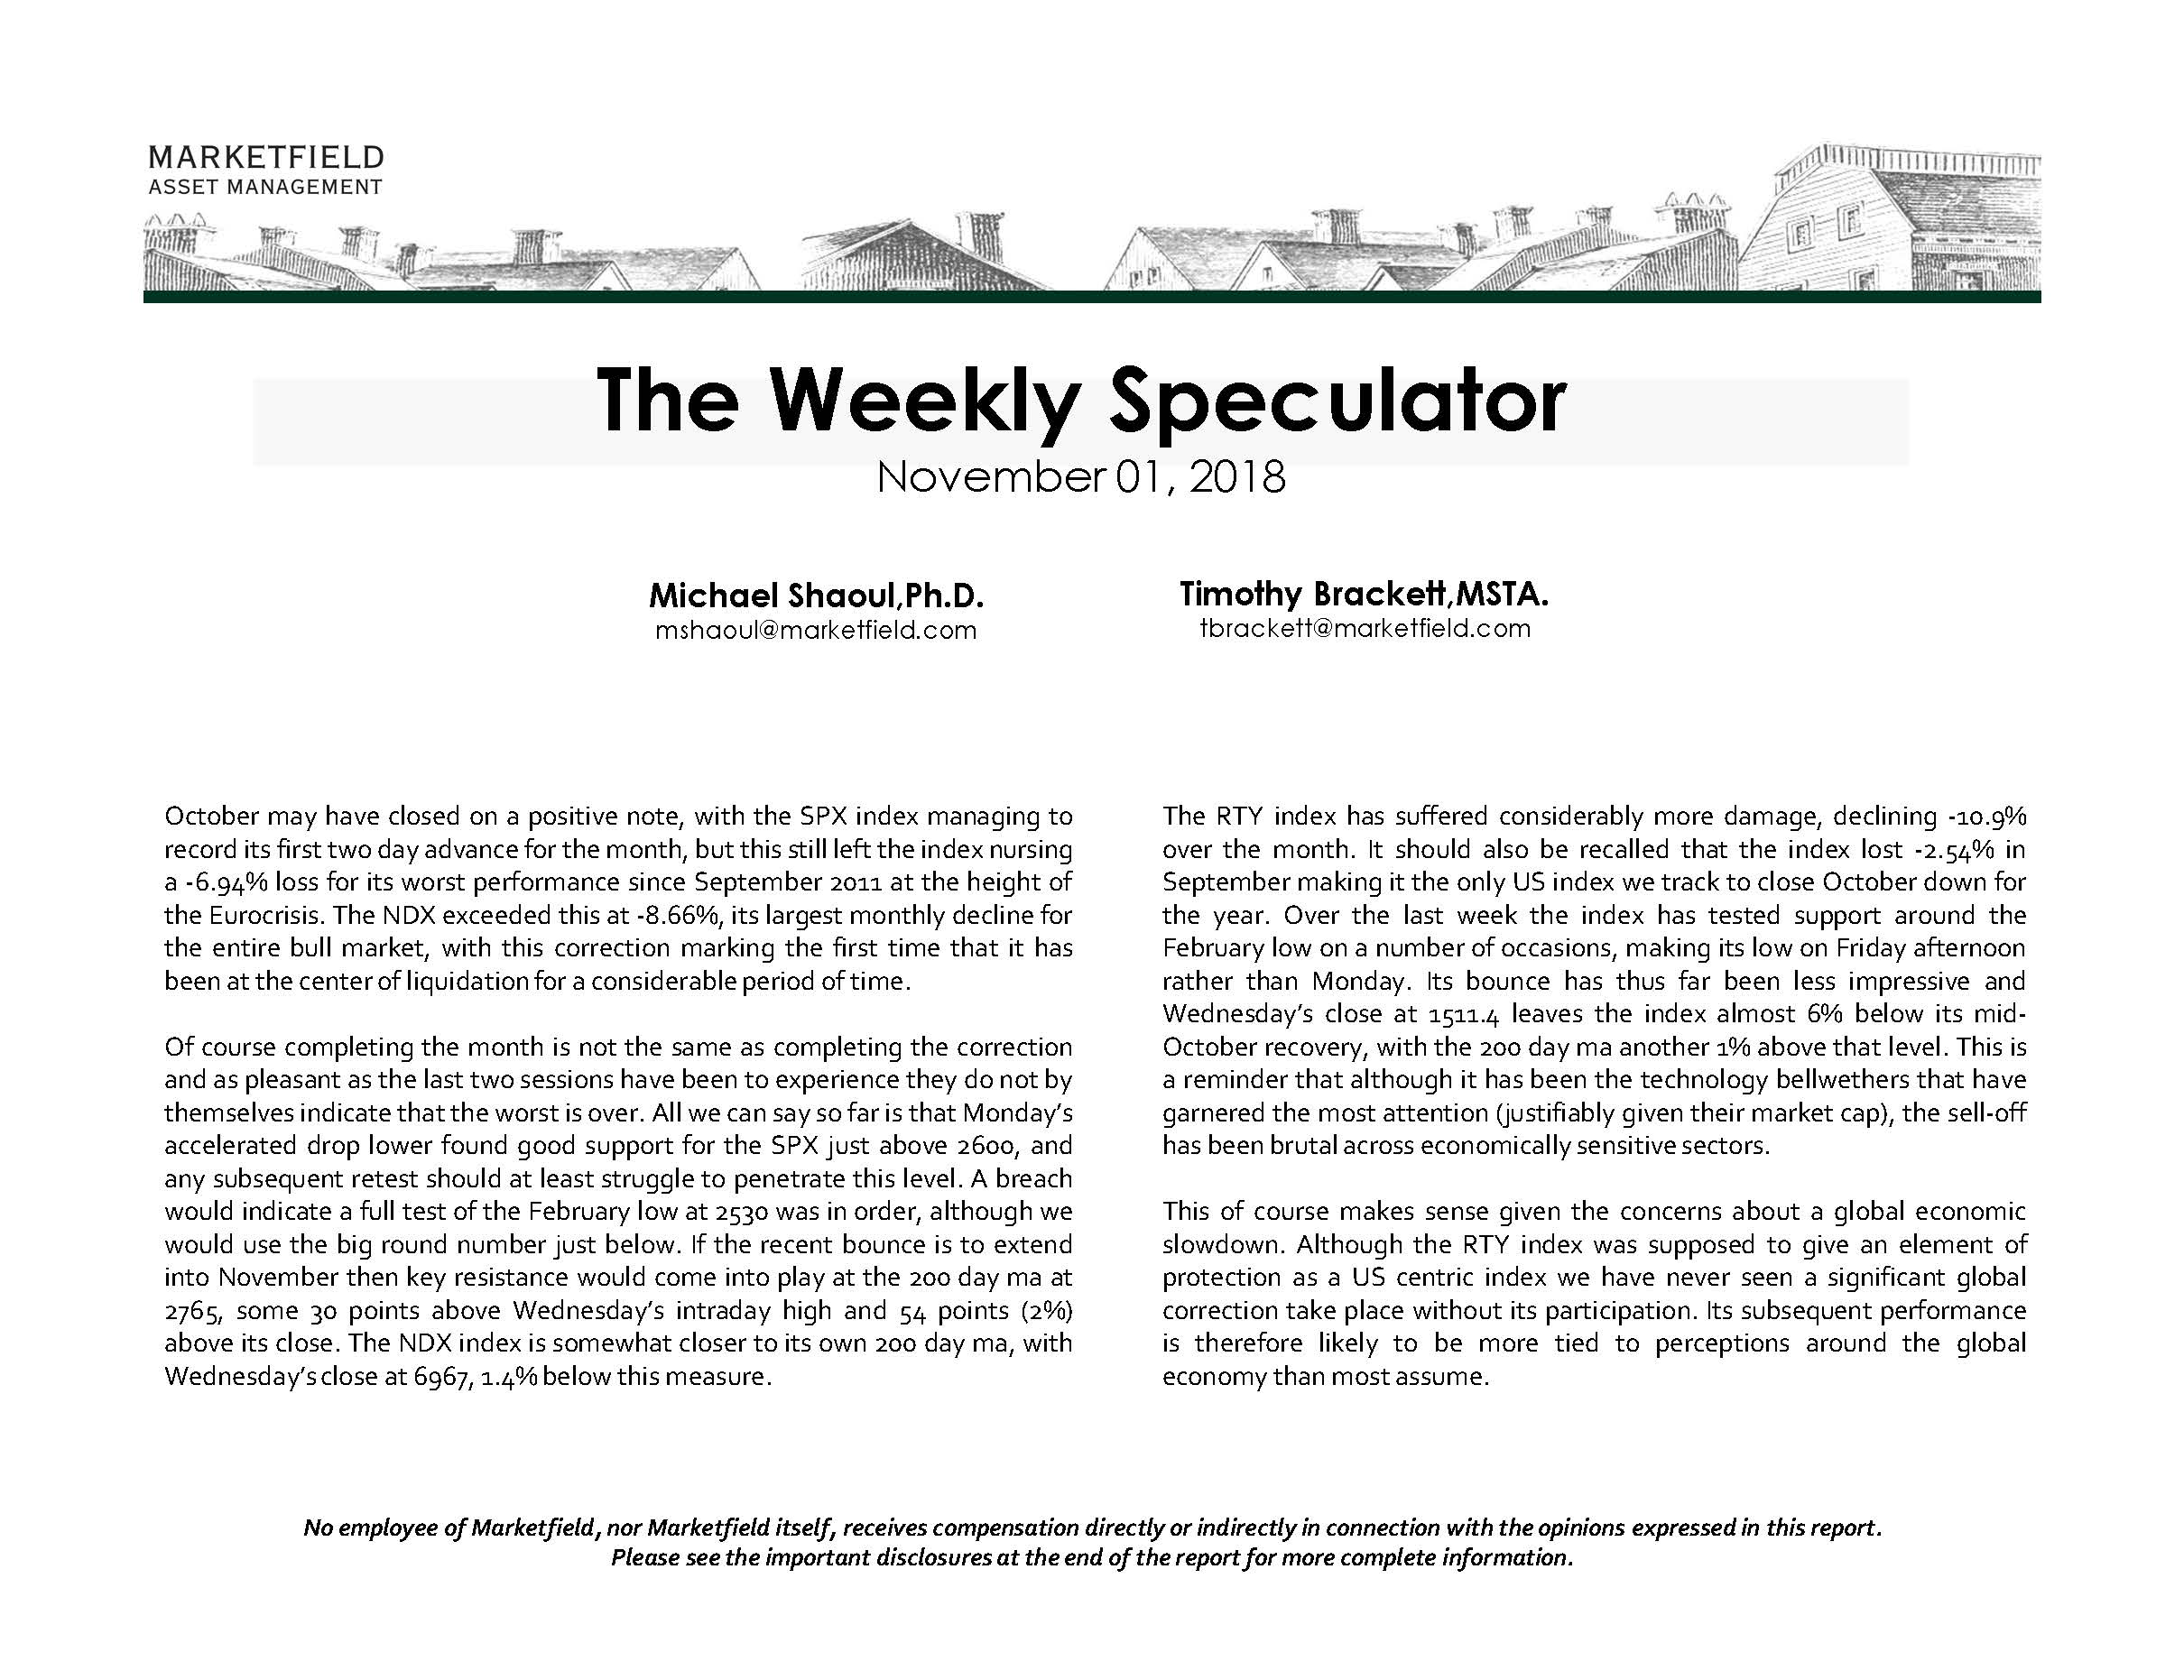 11-1-18_WeeklySpeculator_Page_01.jpg